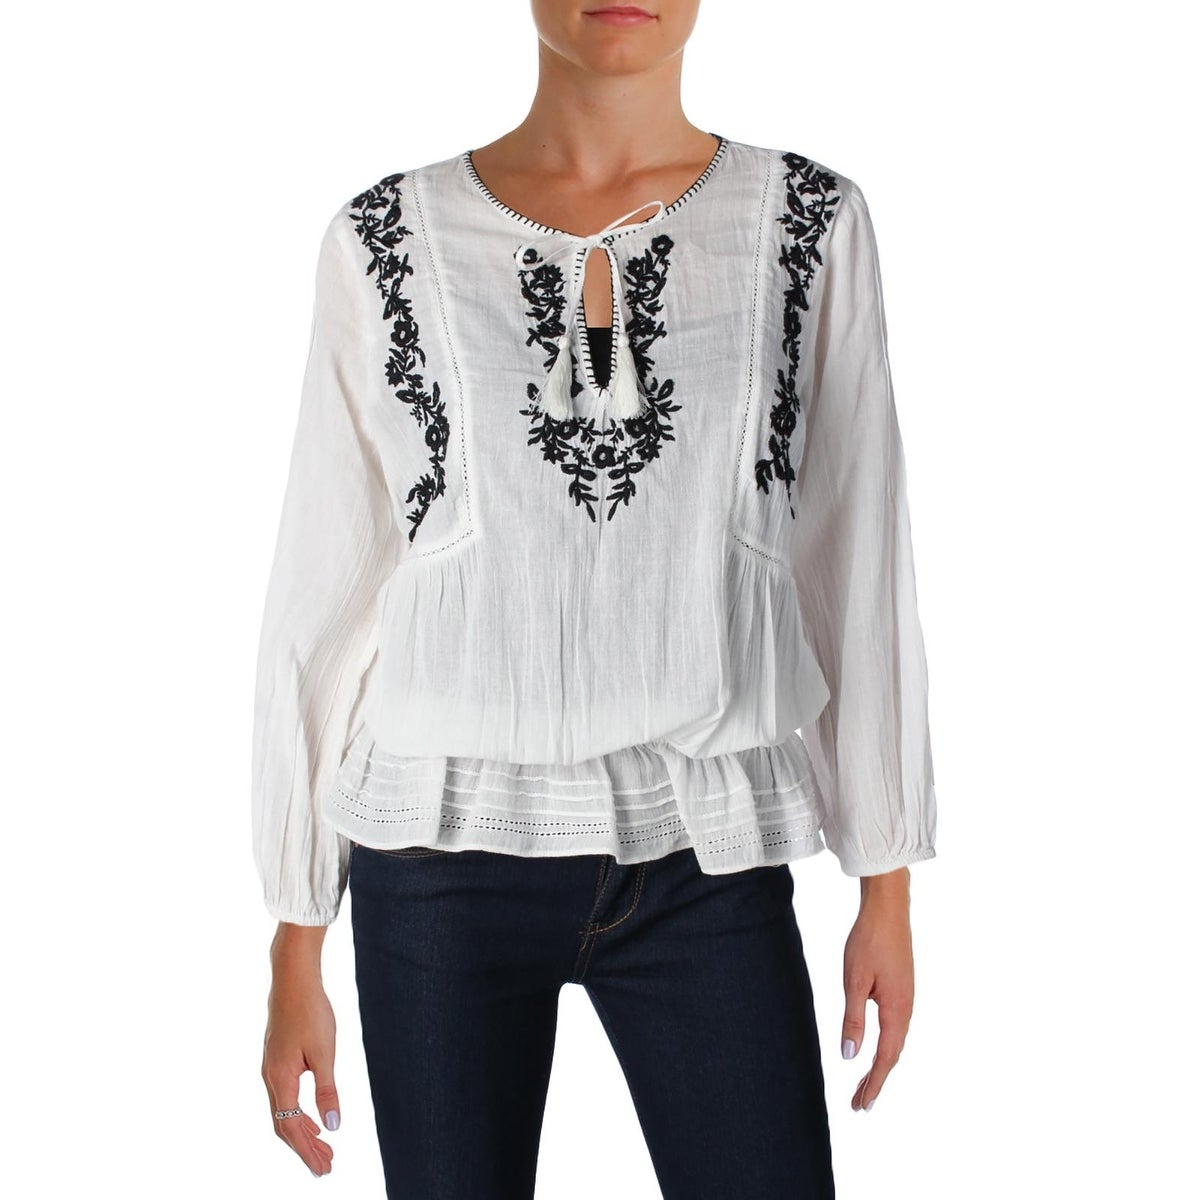 c532f079686 Shop Joie Womens Virani Casual Top Gauze Embroidered - Free Shipping On  Orders Over  45 - Overstock - 21026894